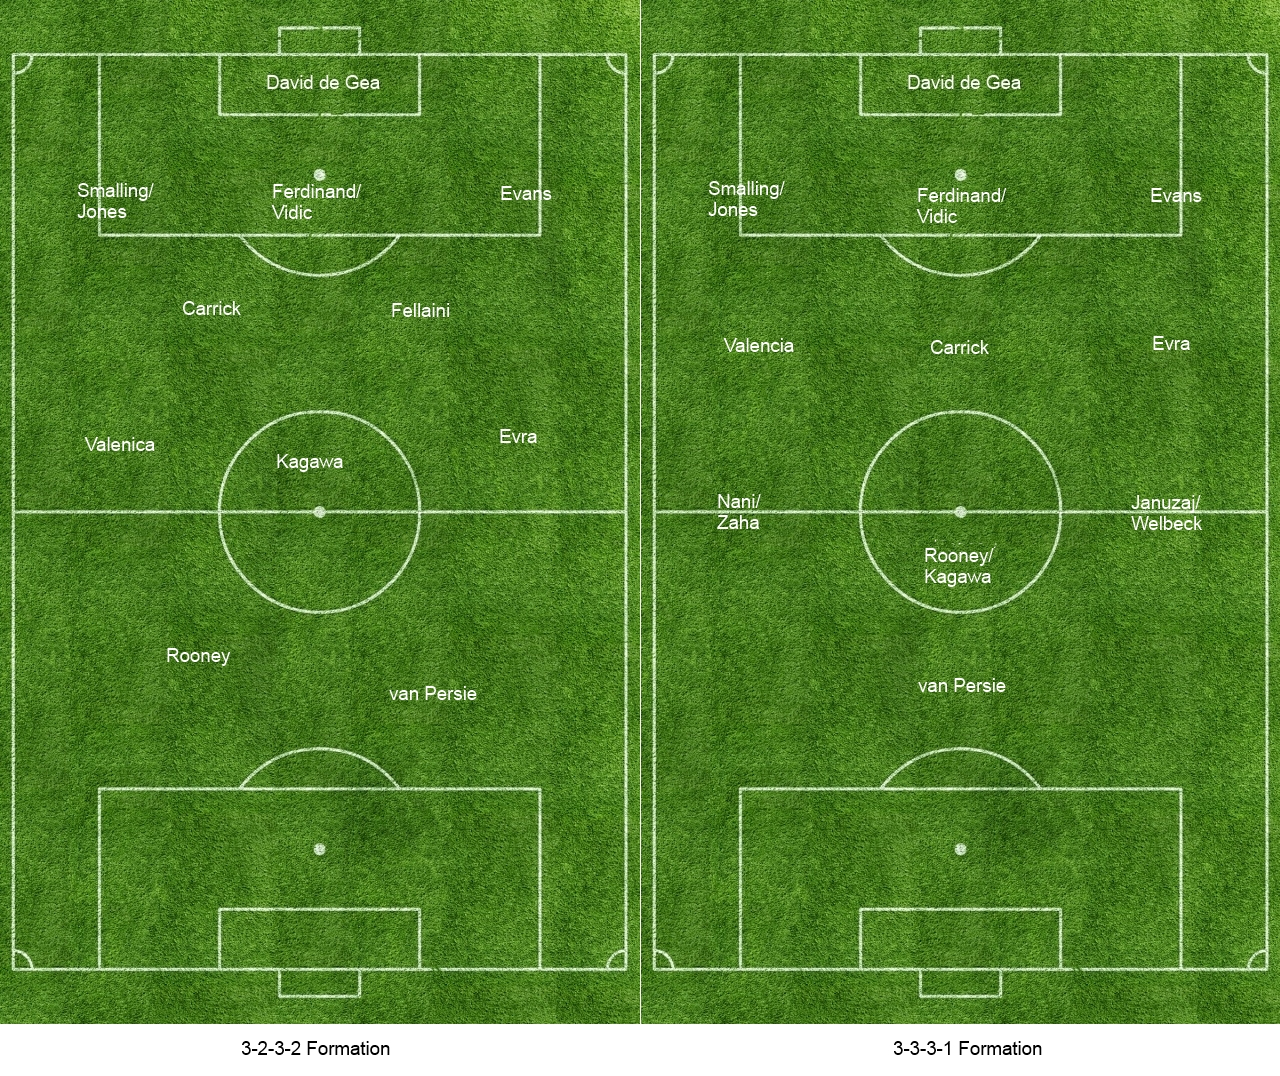 3-2-3-2 or 3-3-3-1 Formation